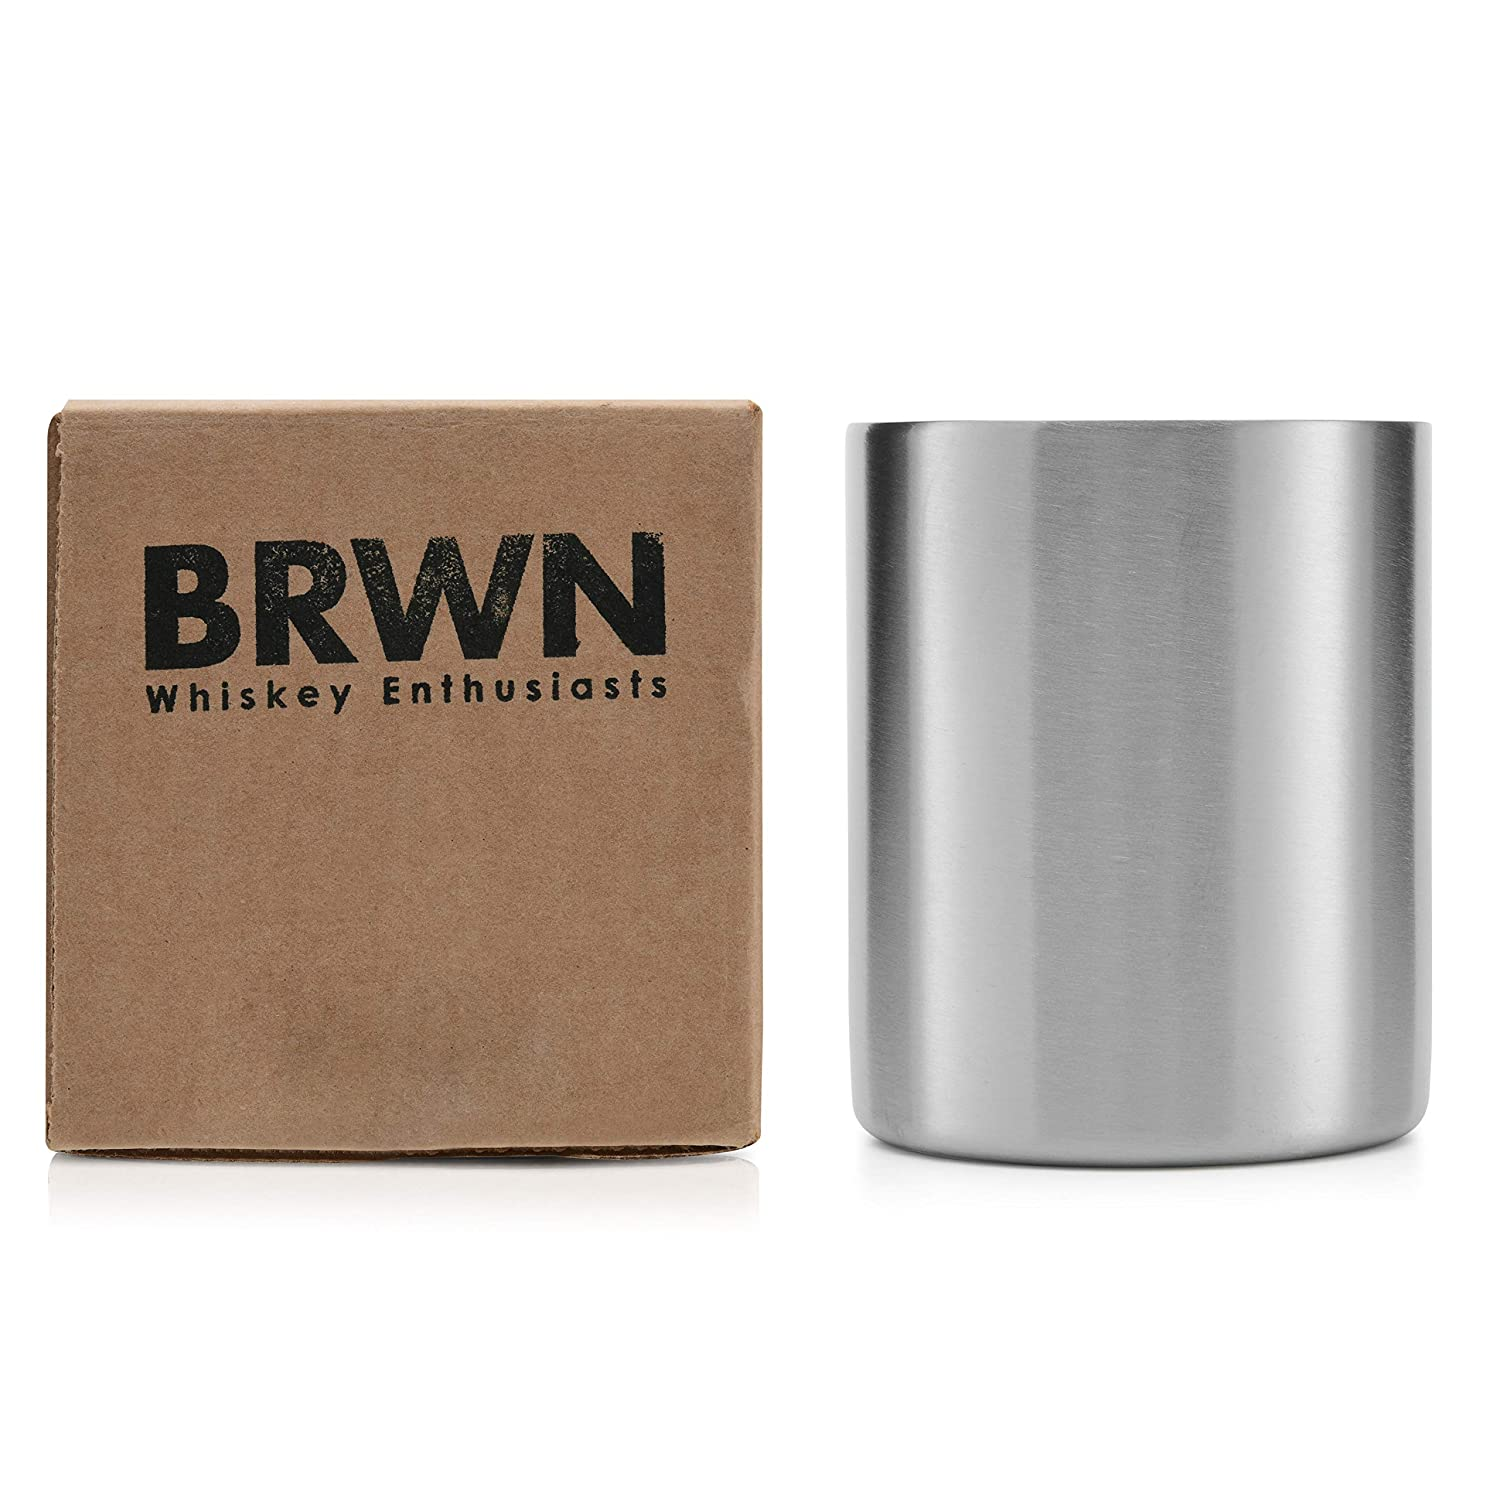 Low Ball Stainless Steel Insulated Whiskey Glass Stainless Steel Whiskey Tumbler